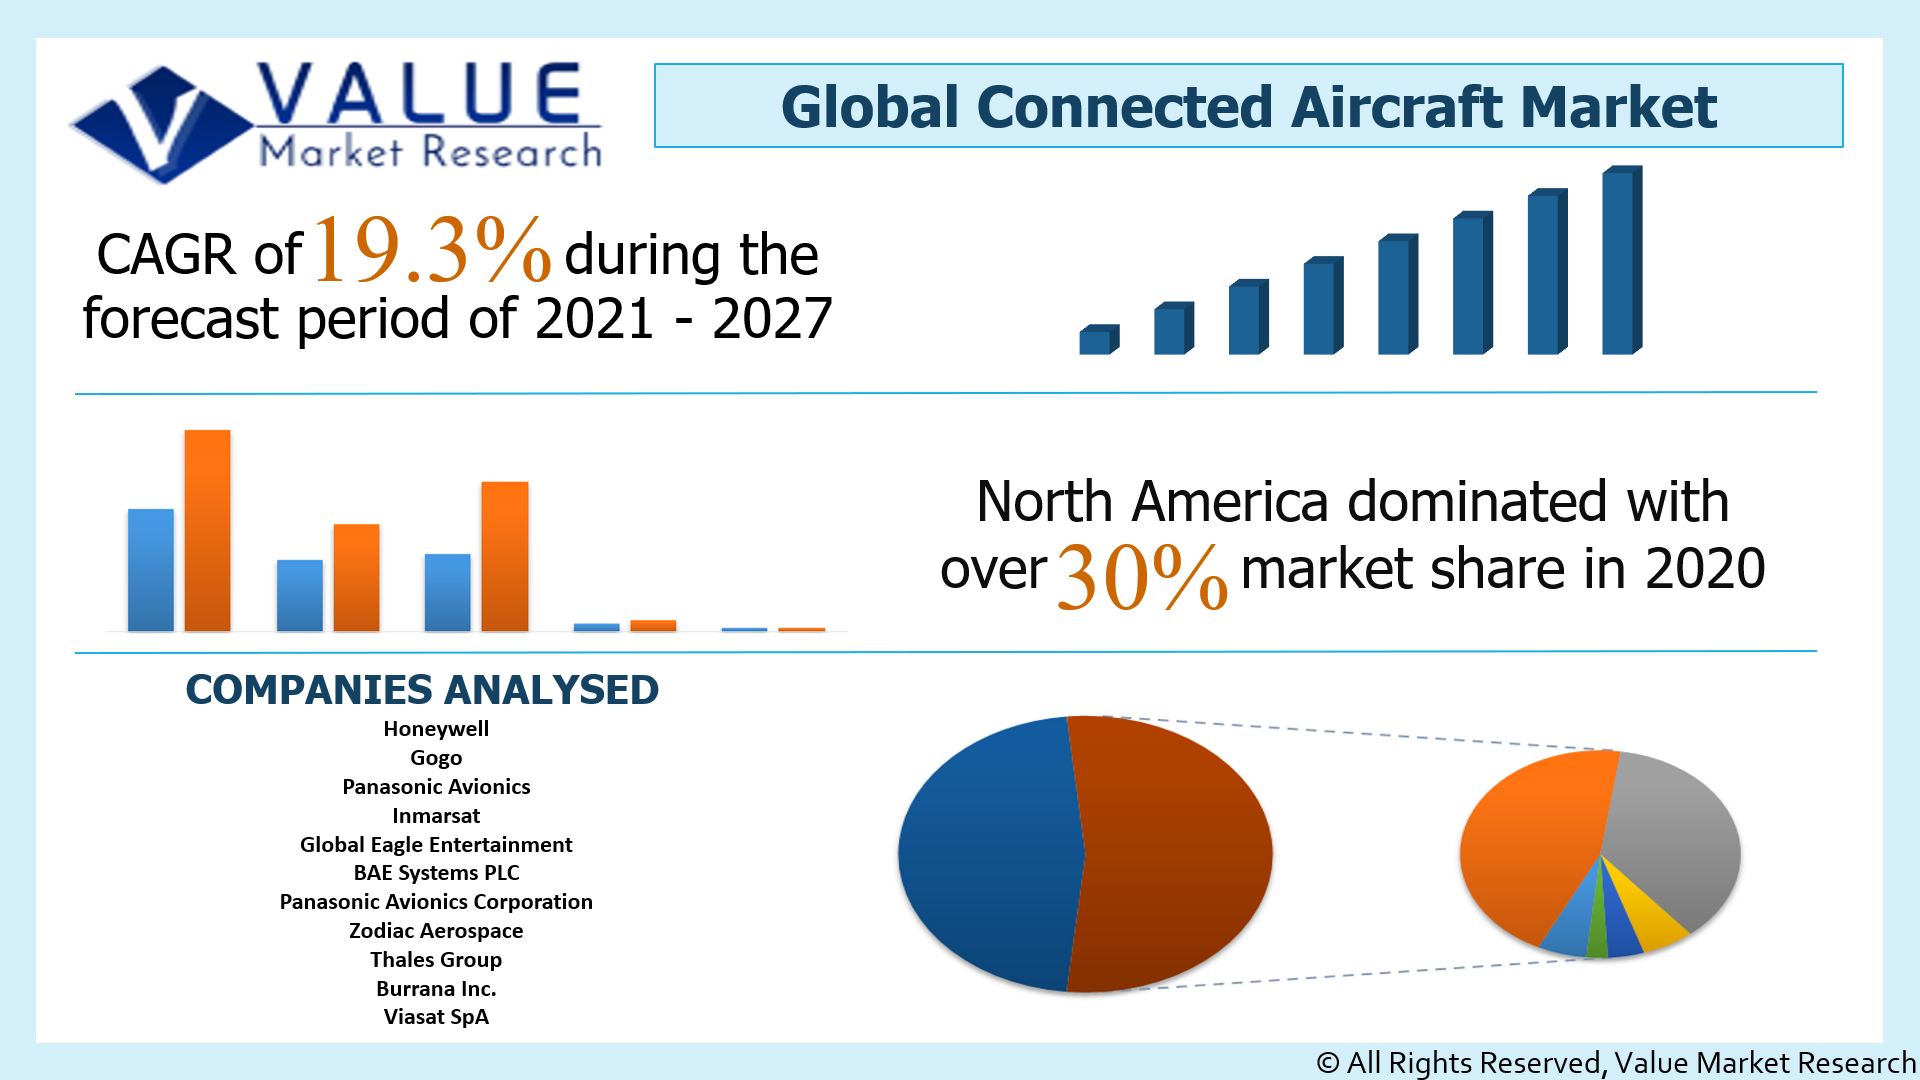 Global Connected Aircraft Market Share